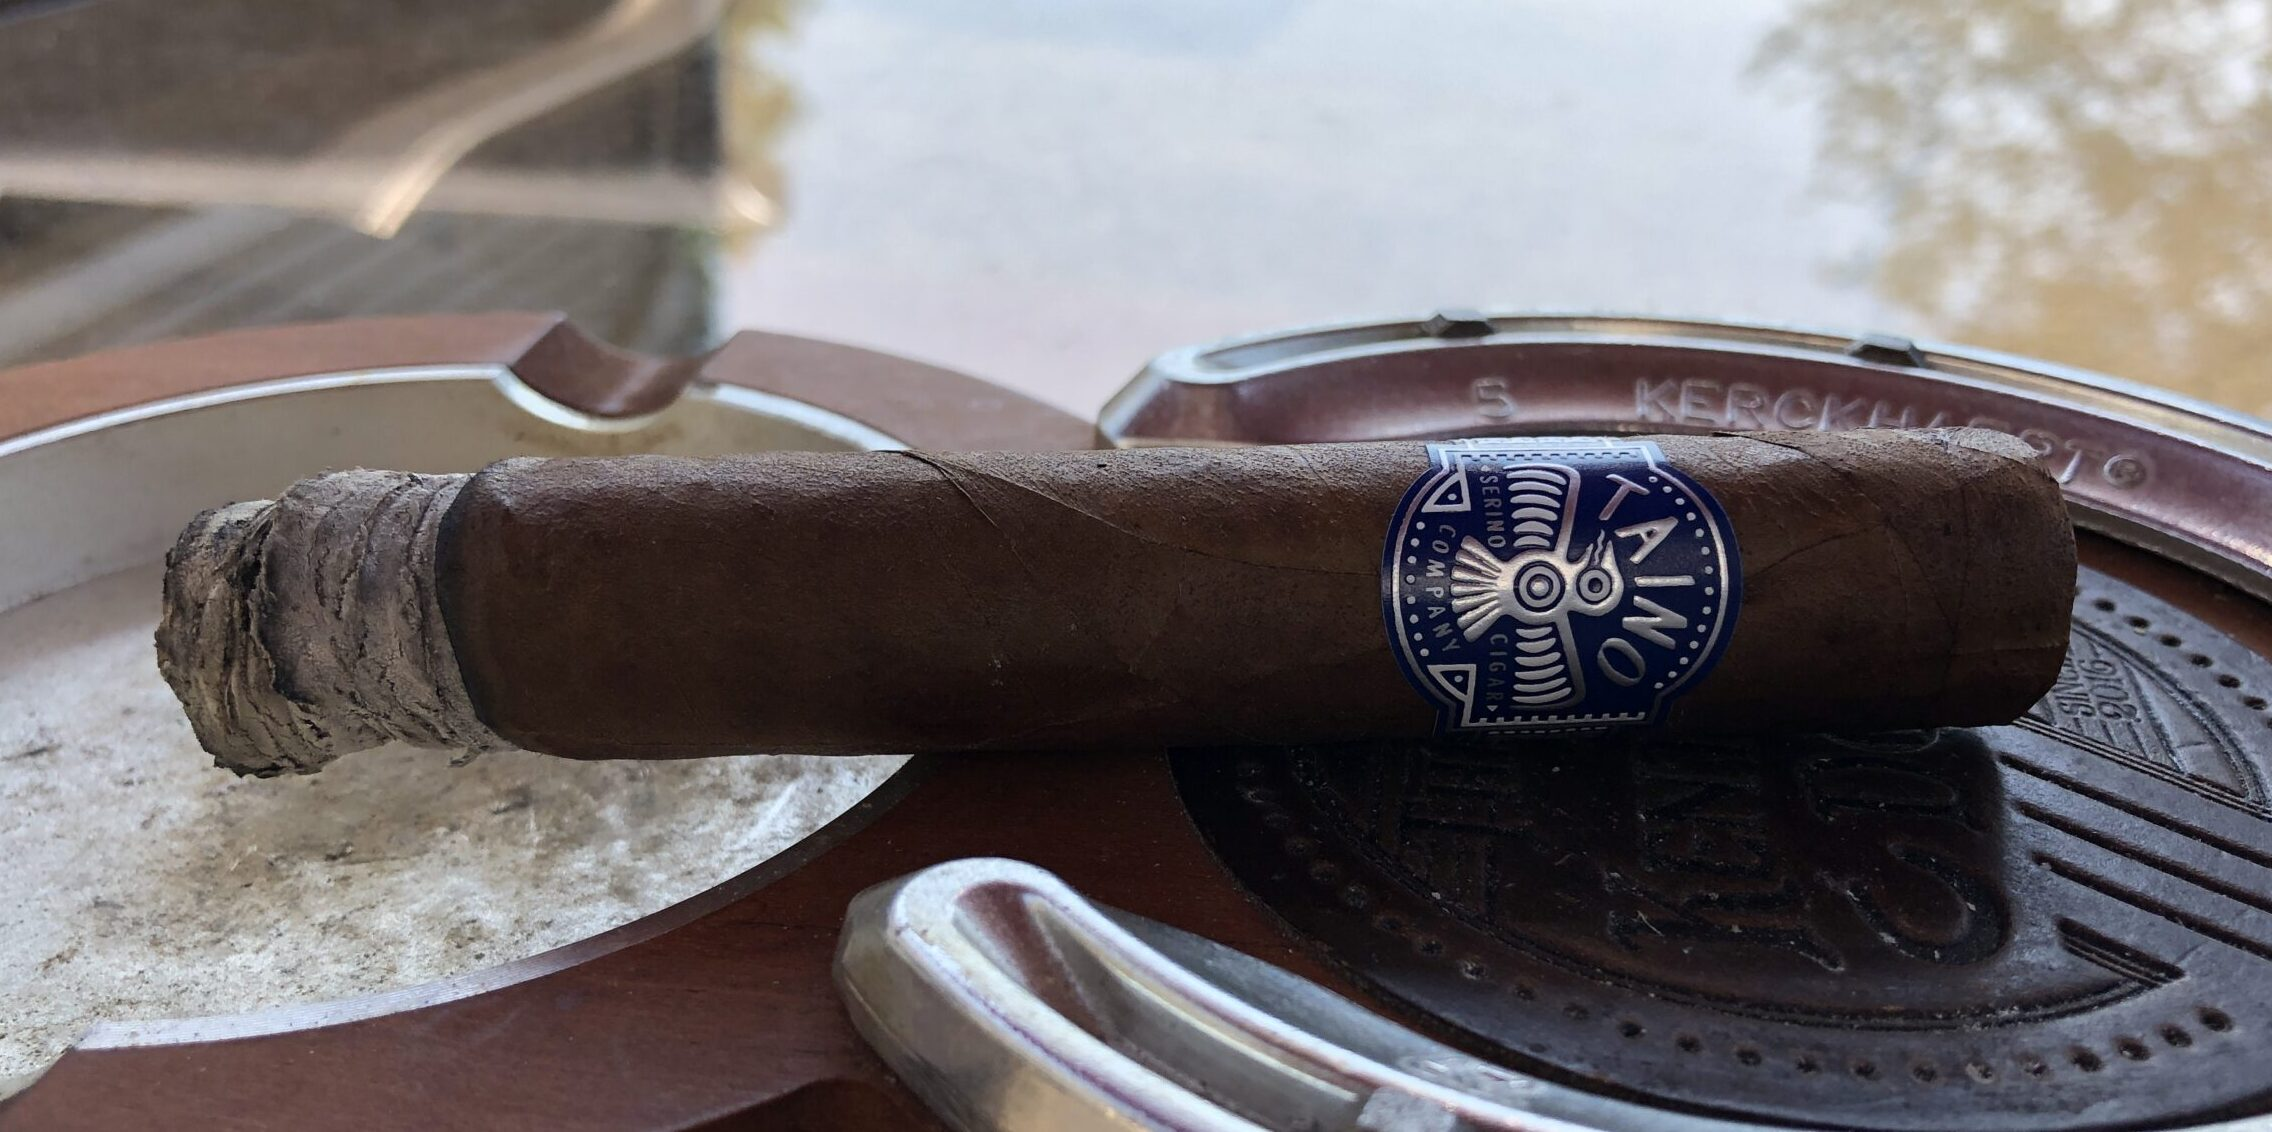 Read more about the article Serino Cigars Taino Heritage Hamaca Robusto Cigar Review